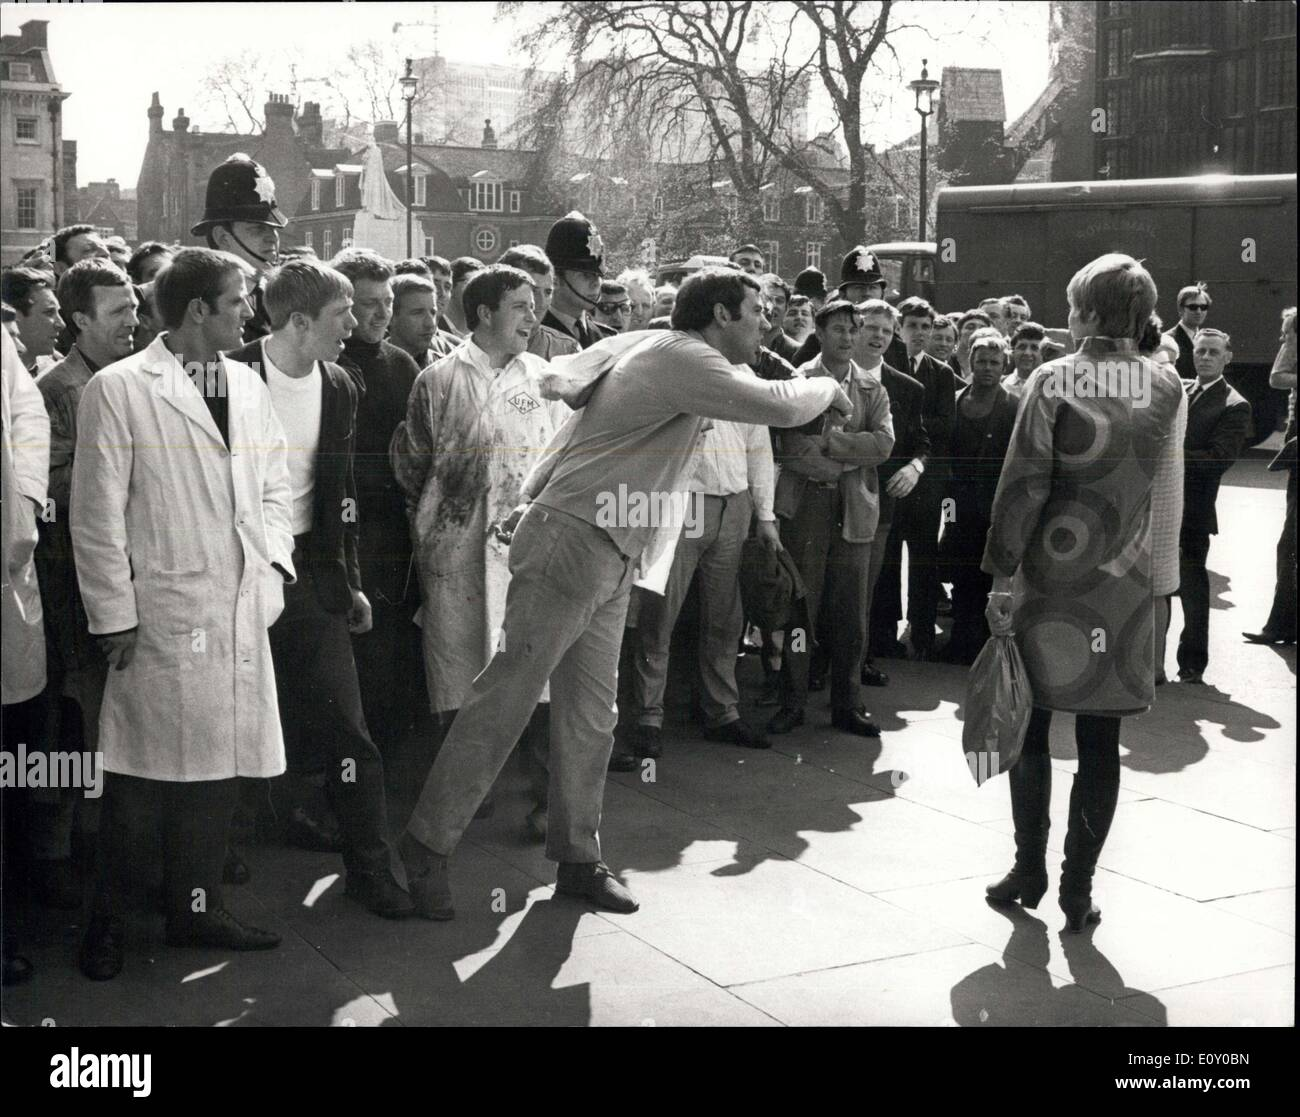 Apr. 24, 1968 - Smithfield Porters March To Westminster: About four hundred porters from Smithfield mat market today marched to - Stock Image